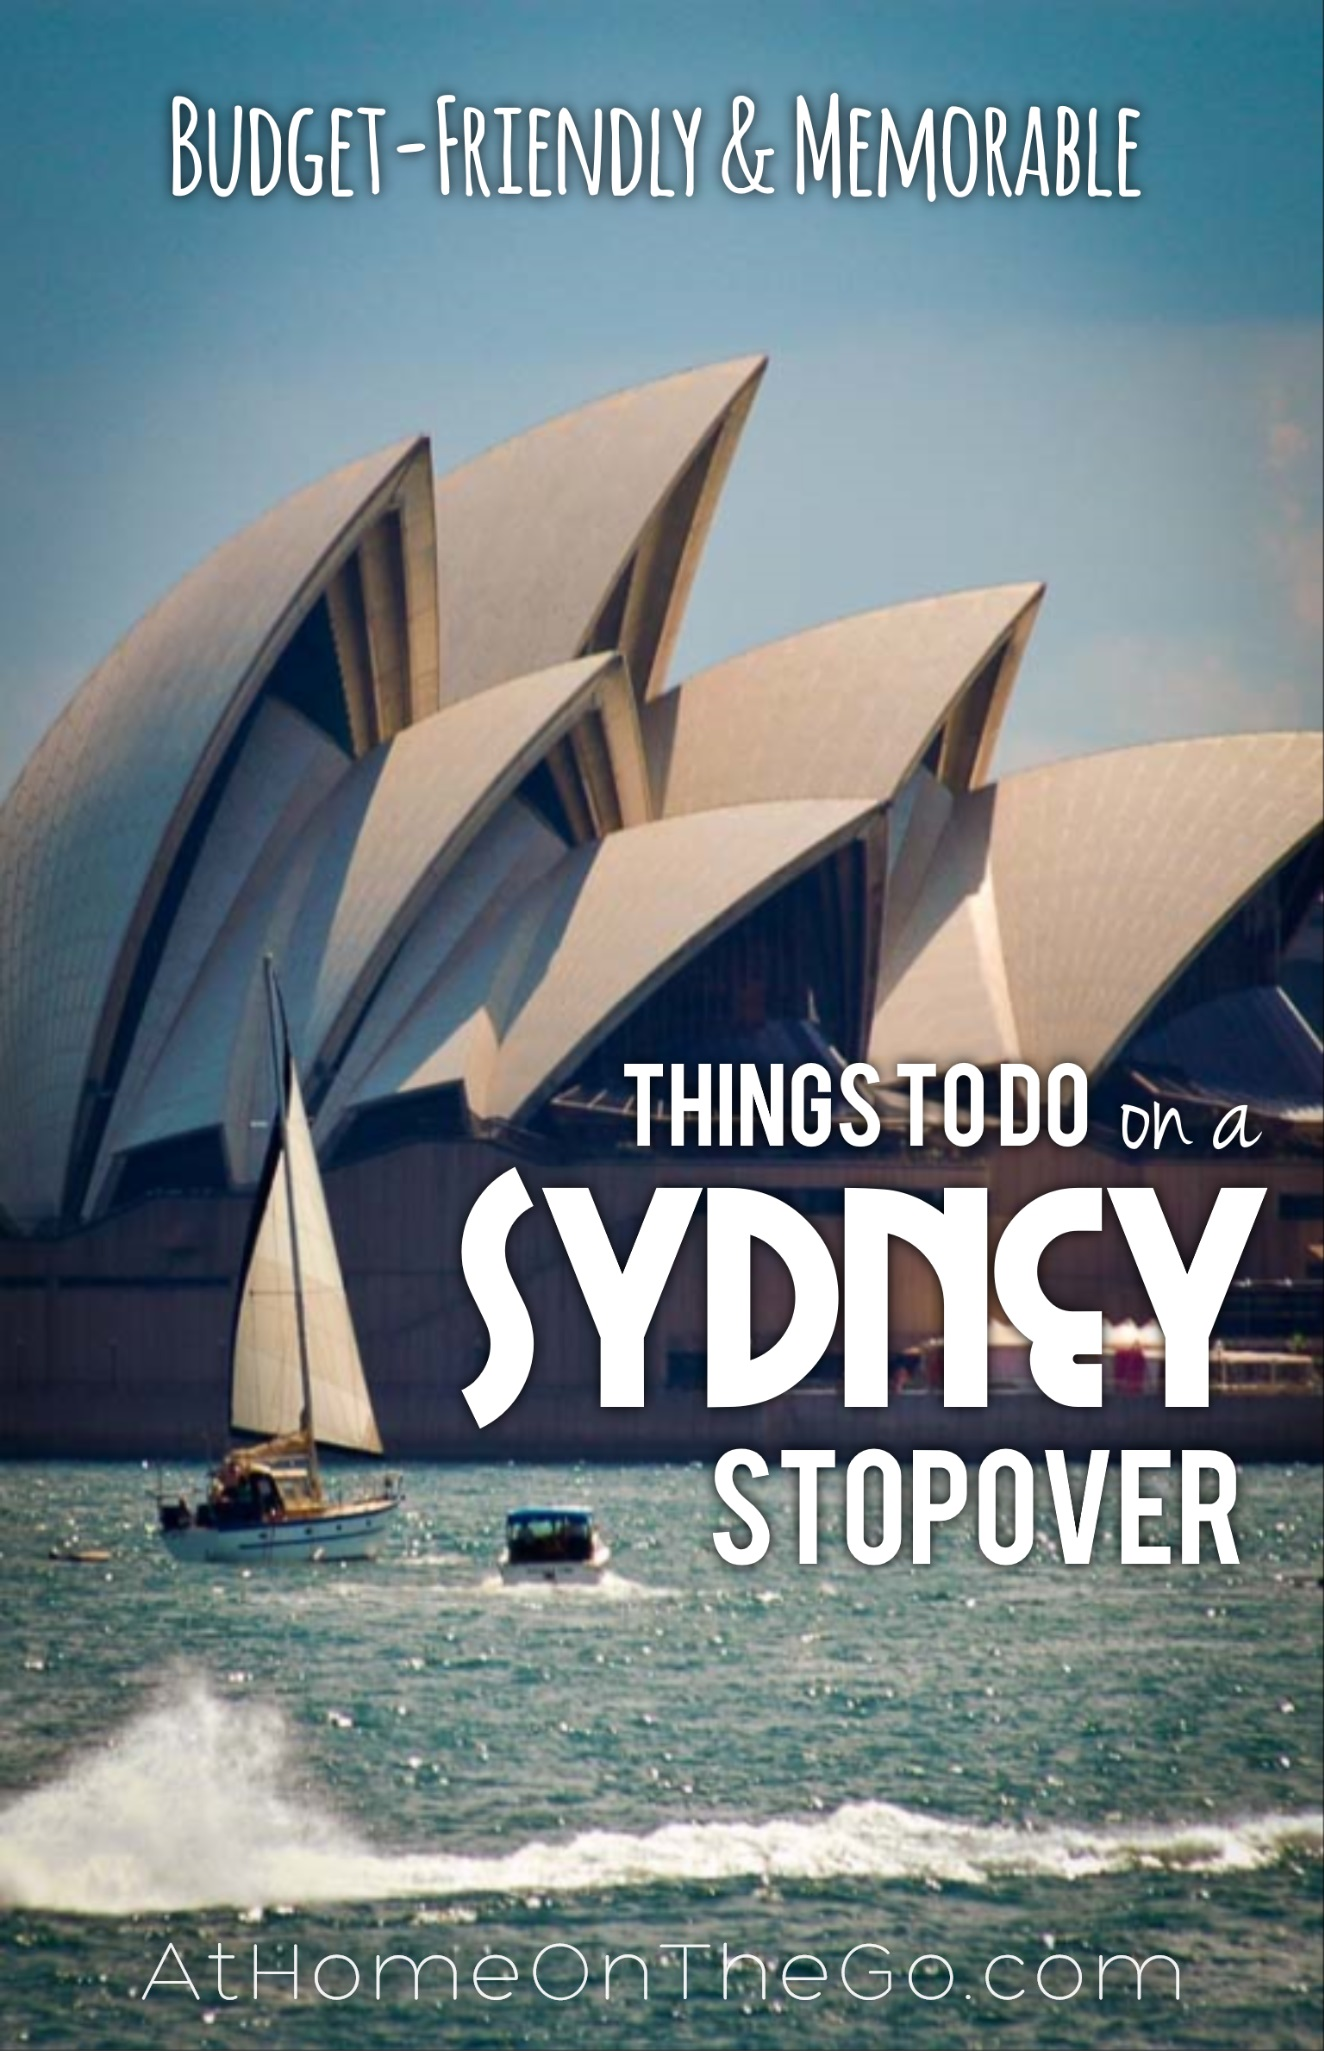 Make a Sydney Stopover! Whether it's a 12-hour layover or a couple days, here are a few cheap yet memorable things to do around the Sydney harbourfront that won't blow your budget.